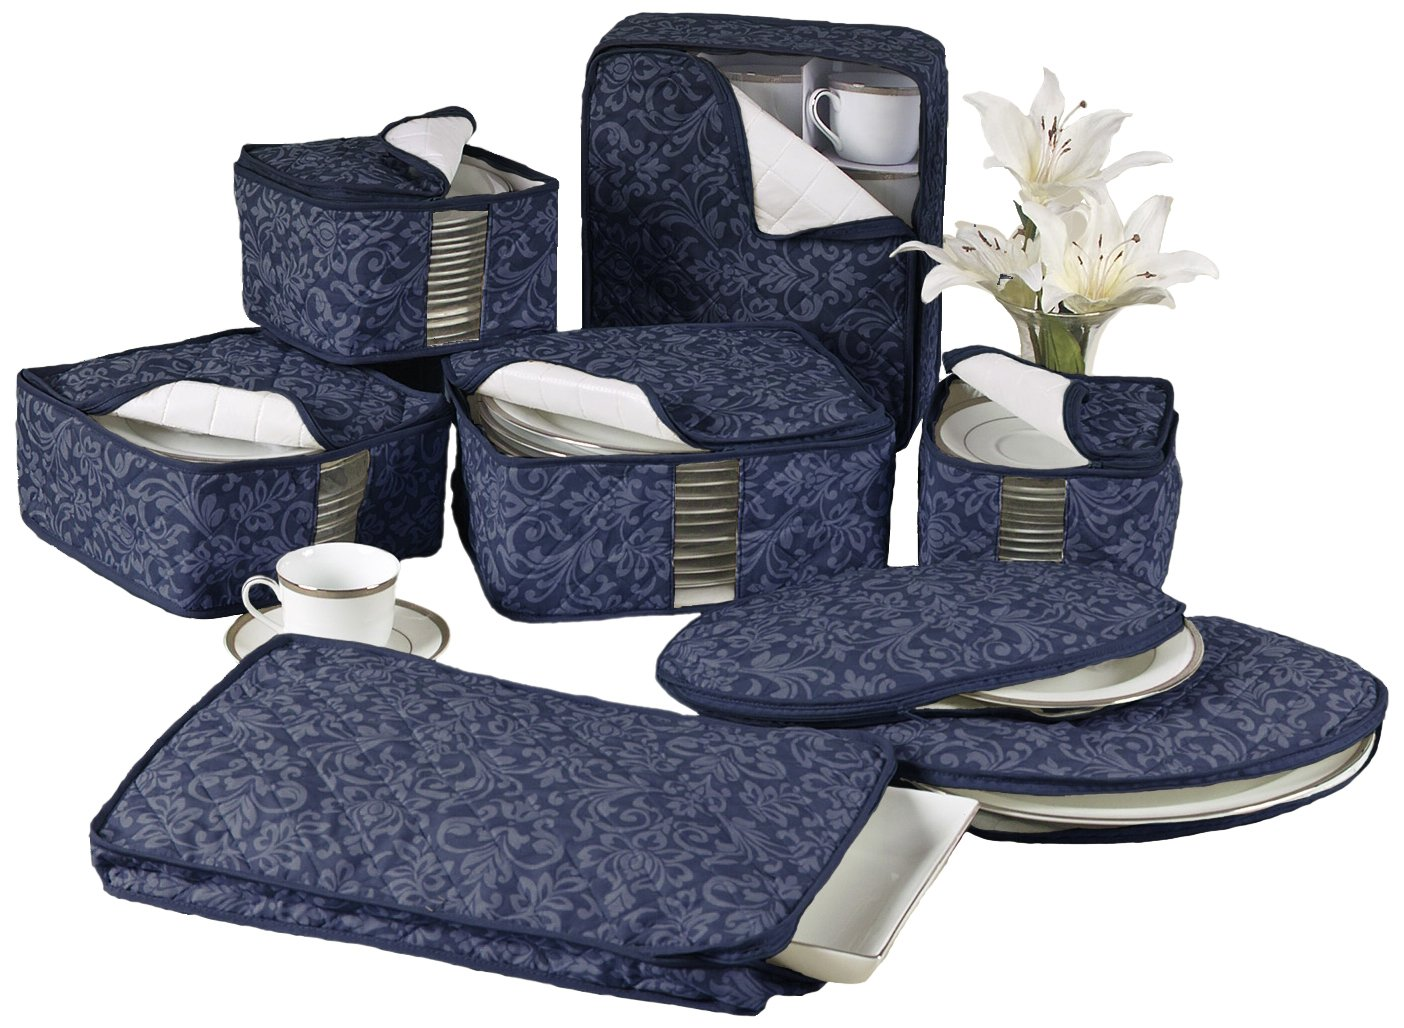 Amazon.com - Homewear 8-Piece HUDSON DAMASK China Storage ... : quilted dish storage - Adamdwight.com